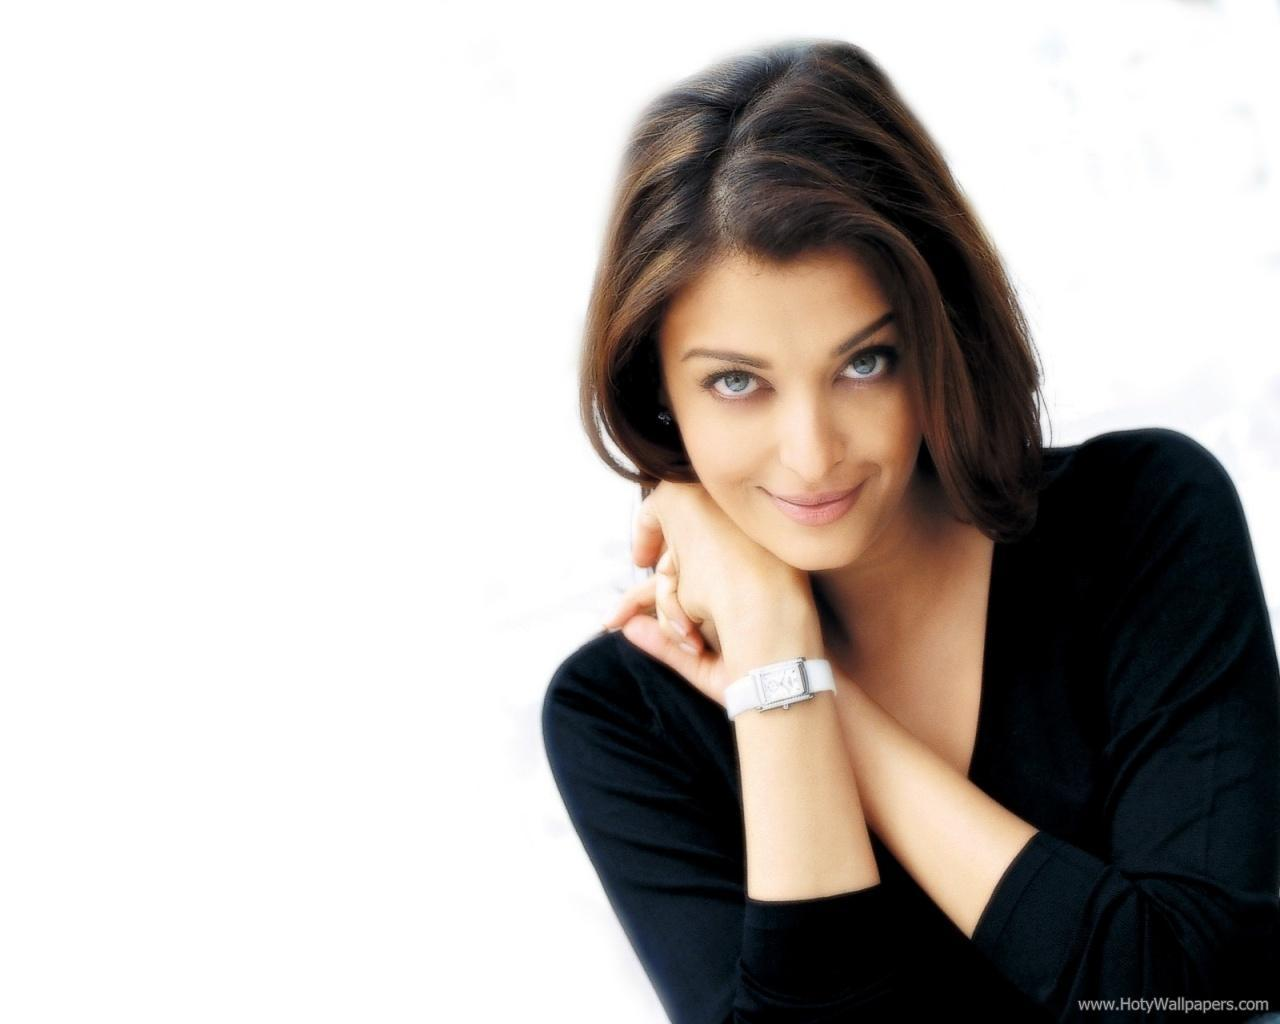 aishwarya rai beautiful wallpapers - 50 Beautiful Aishwarya Rai Wallpapers and Pics